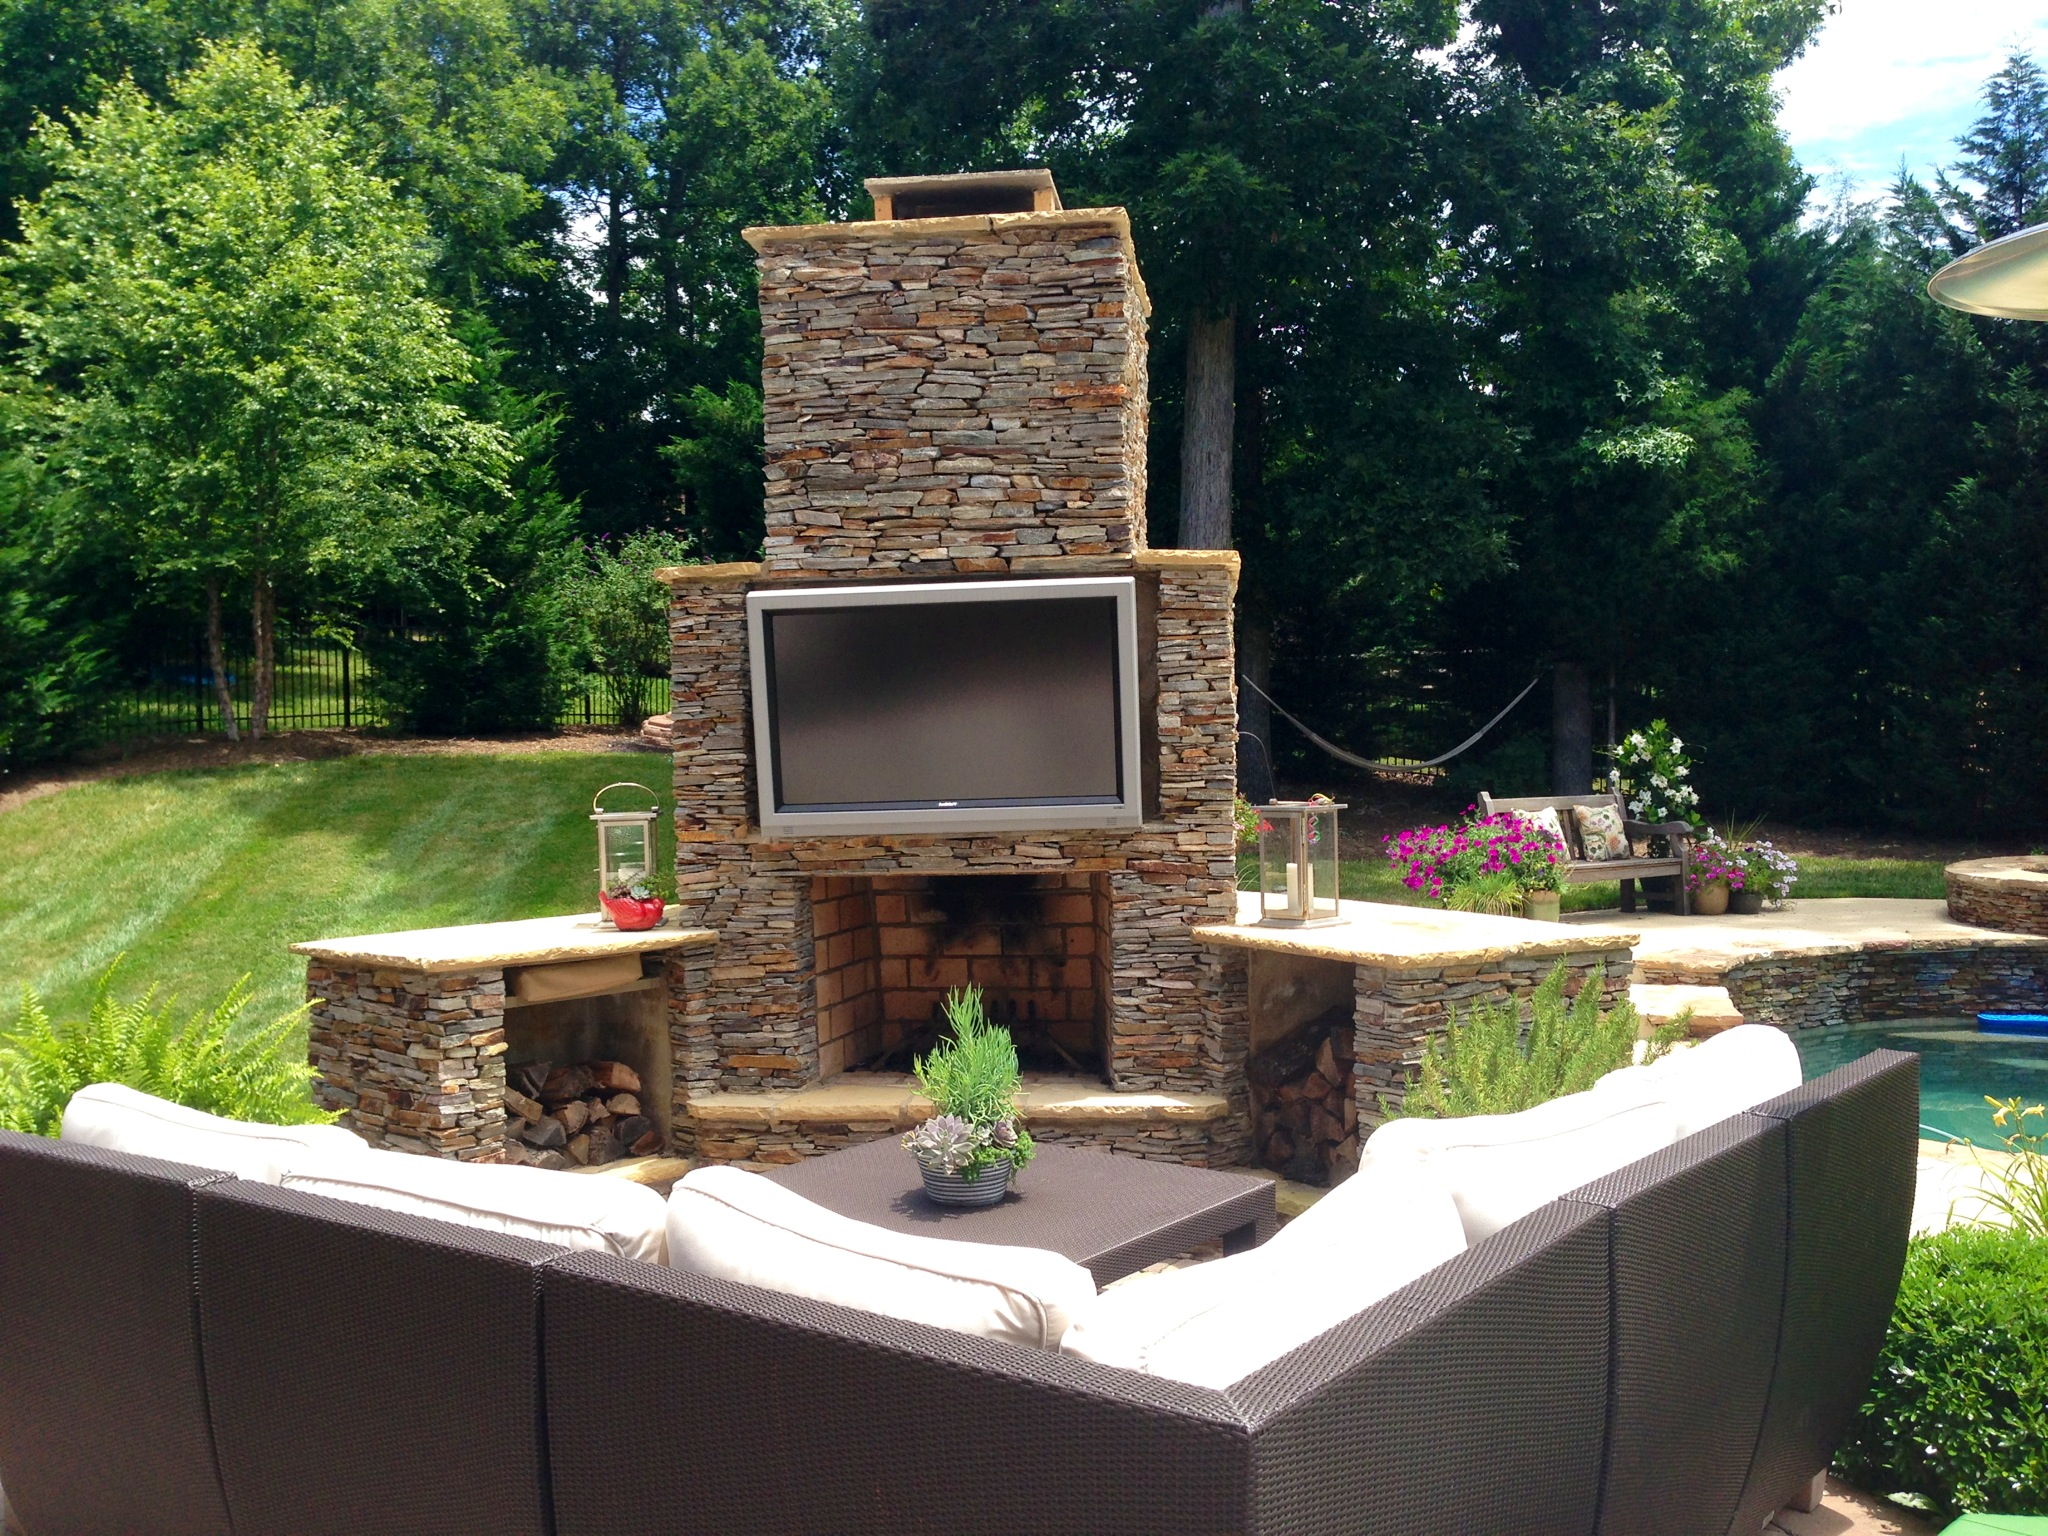 Archadeck Of Charlotte Designed And Built This Outdoor Living Space  Featuring A Sunbrite Outdoor TV And